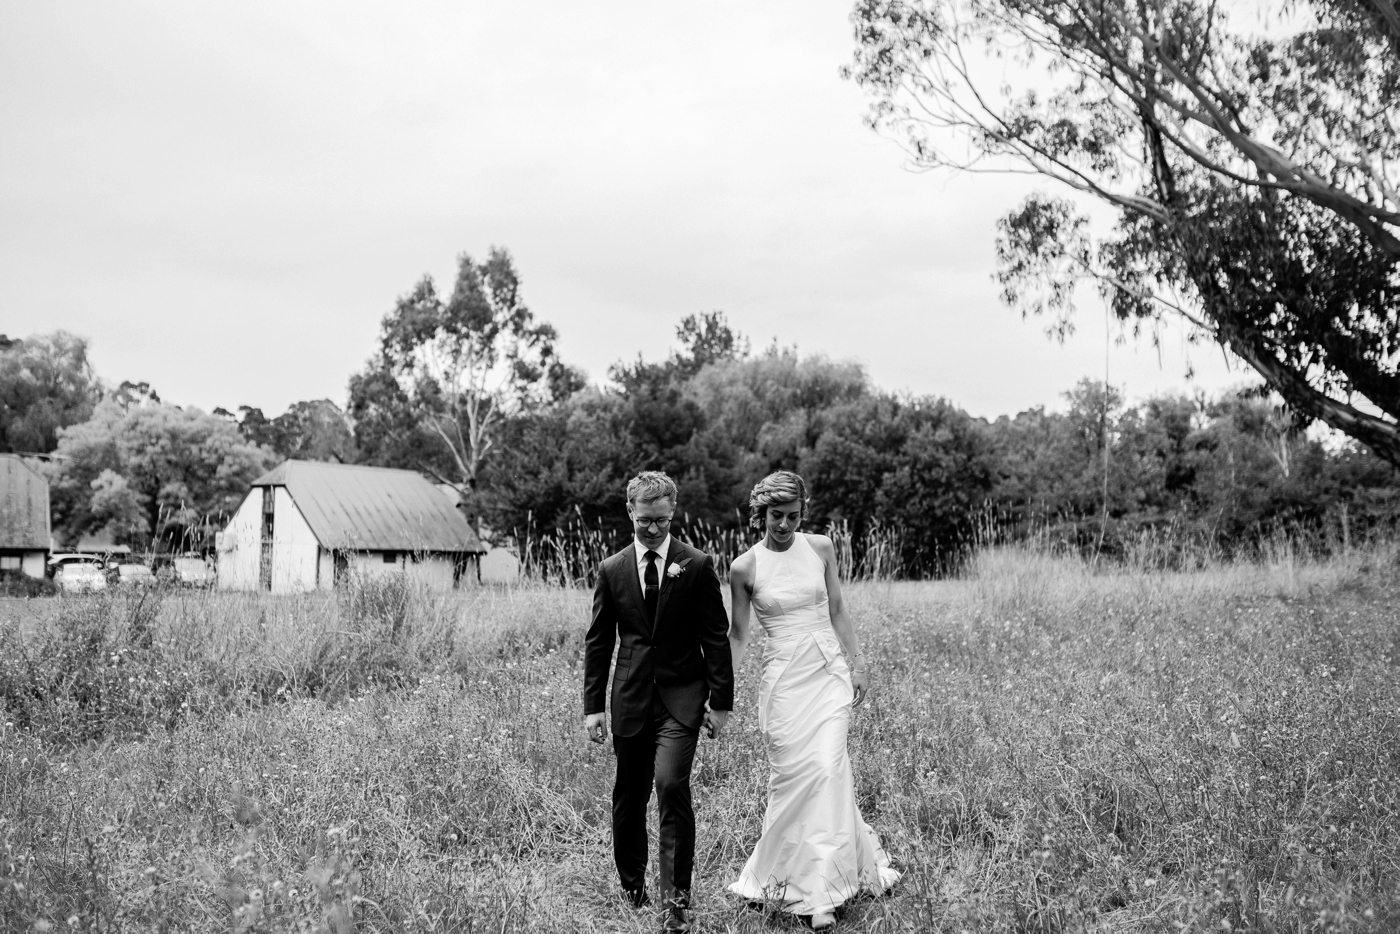 Liam & Bec - White House Adelaide Hills Wedding - Natural Wedding Photography in Adelaide - www.katherineschultzphotography.com